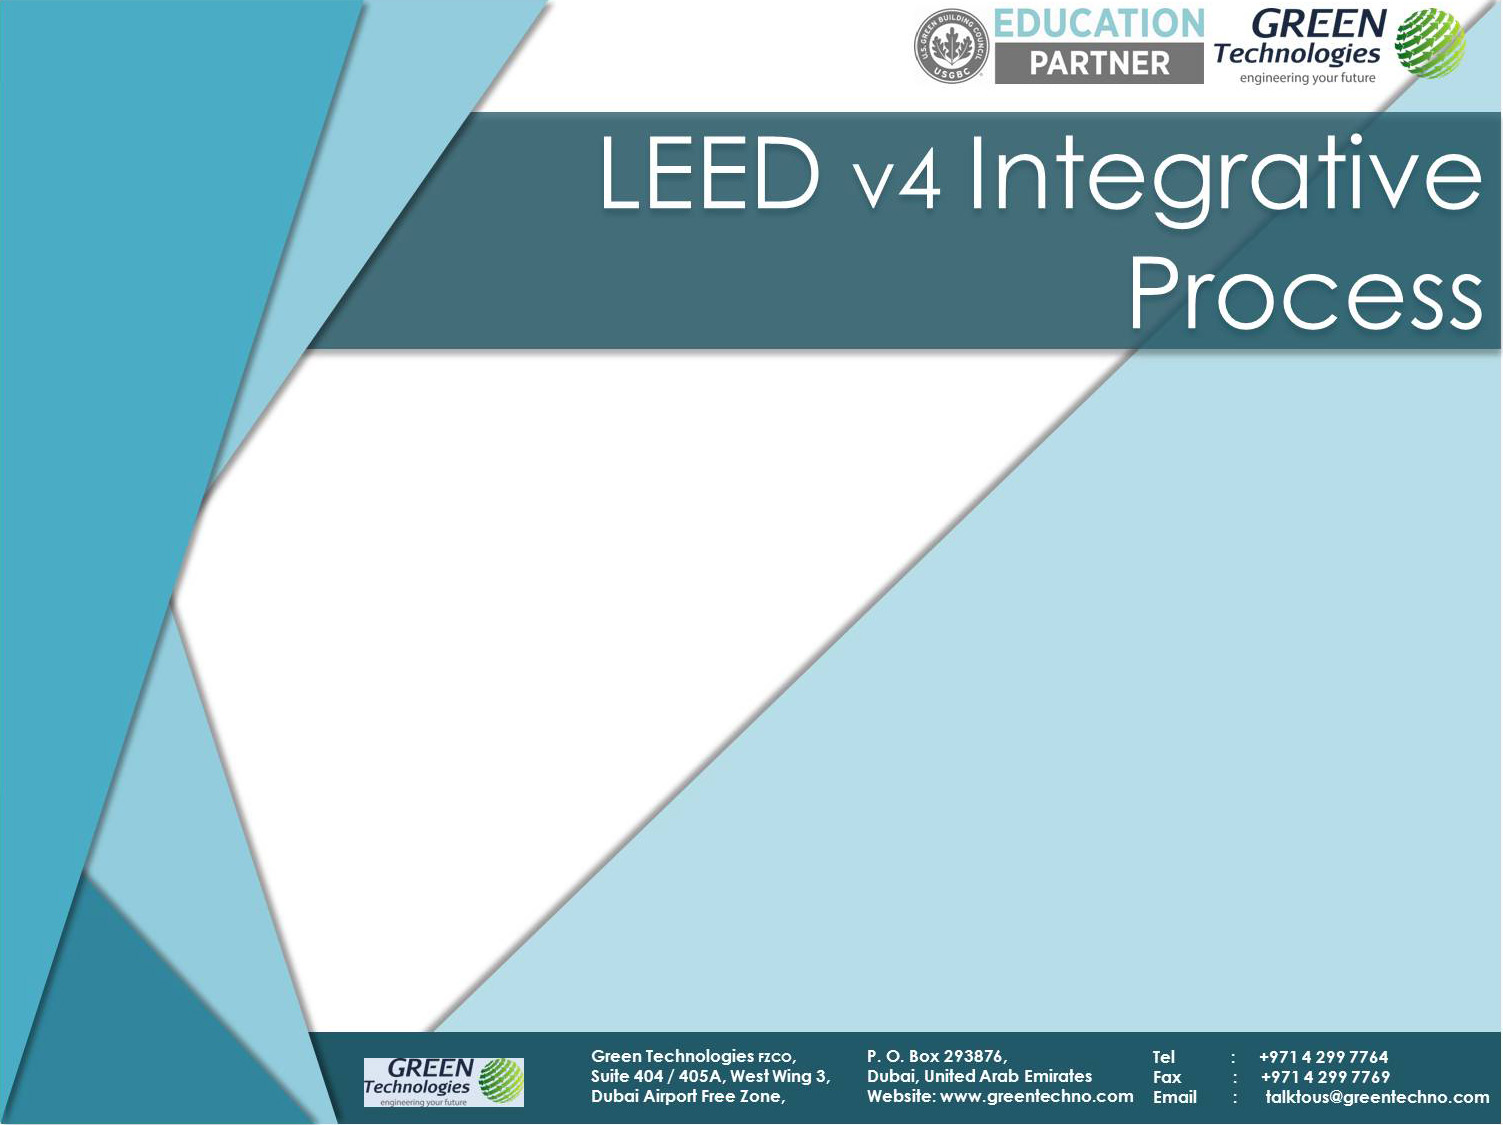 Leed V4 Integrative Process Green Technologies